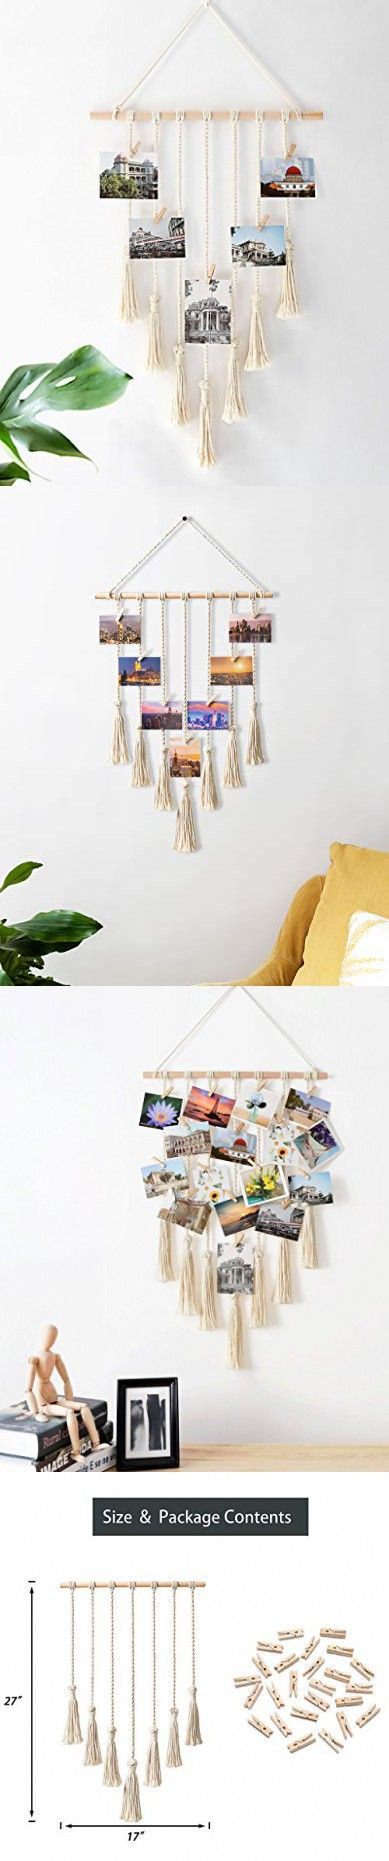 Mkono Hanging Photo Display Macrame Wall Hanging Pictures Organizer Home Decor 25 Wood Clips